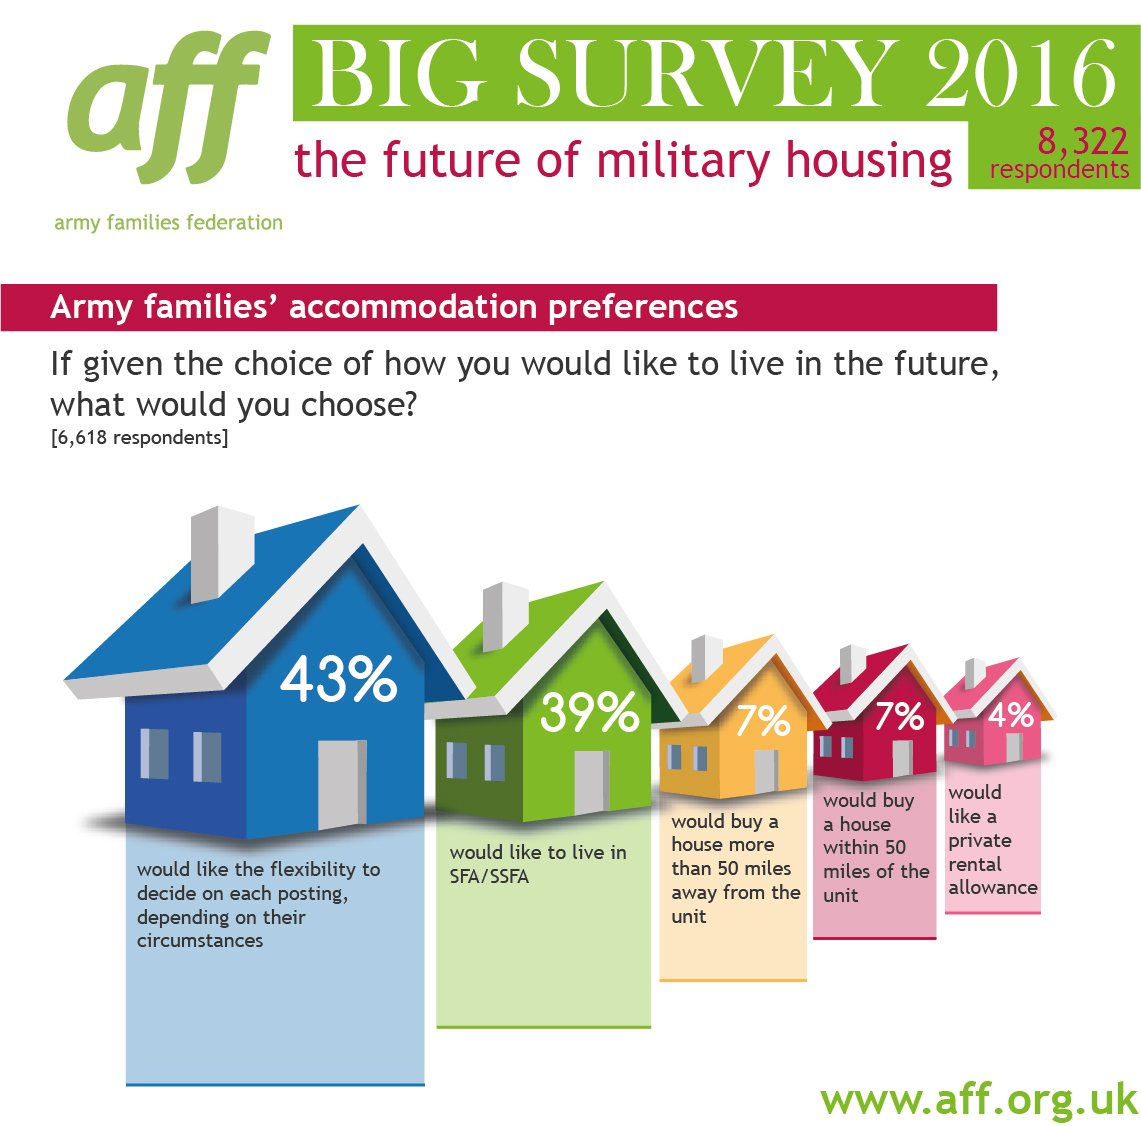 How would your Army family like to live in the future? Find out more at https://t.co/CwWVht4ZuV https://t.co/obPMngAkjM